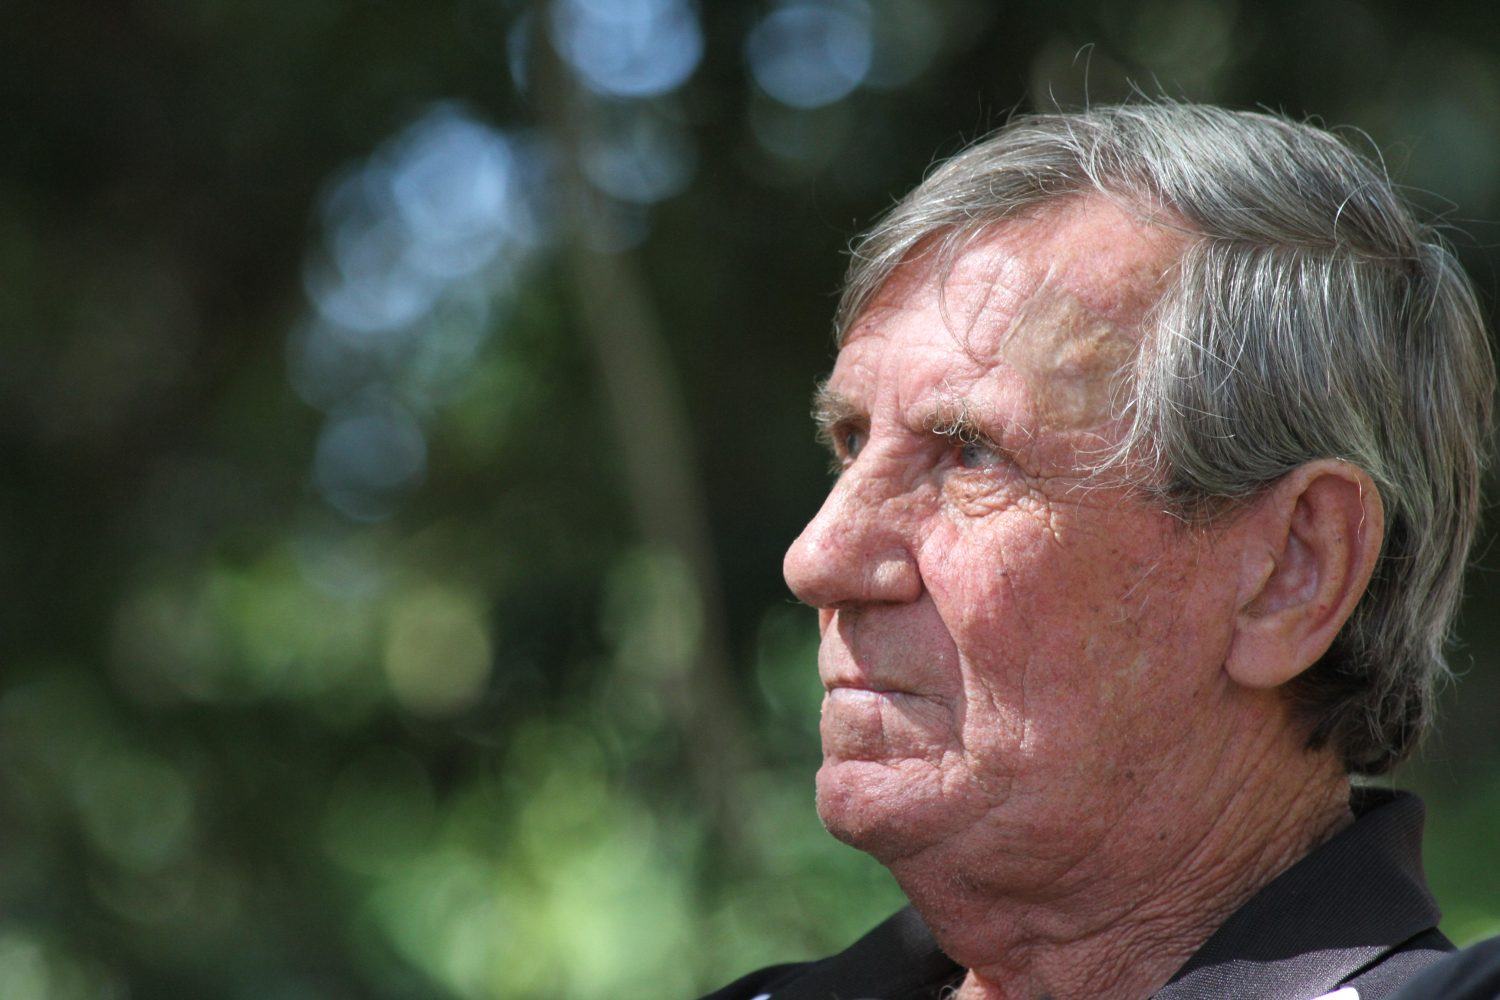 BLACK LUNG: A Queensland coal miner's story